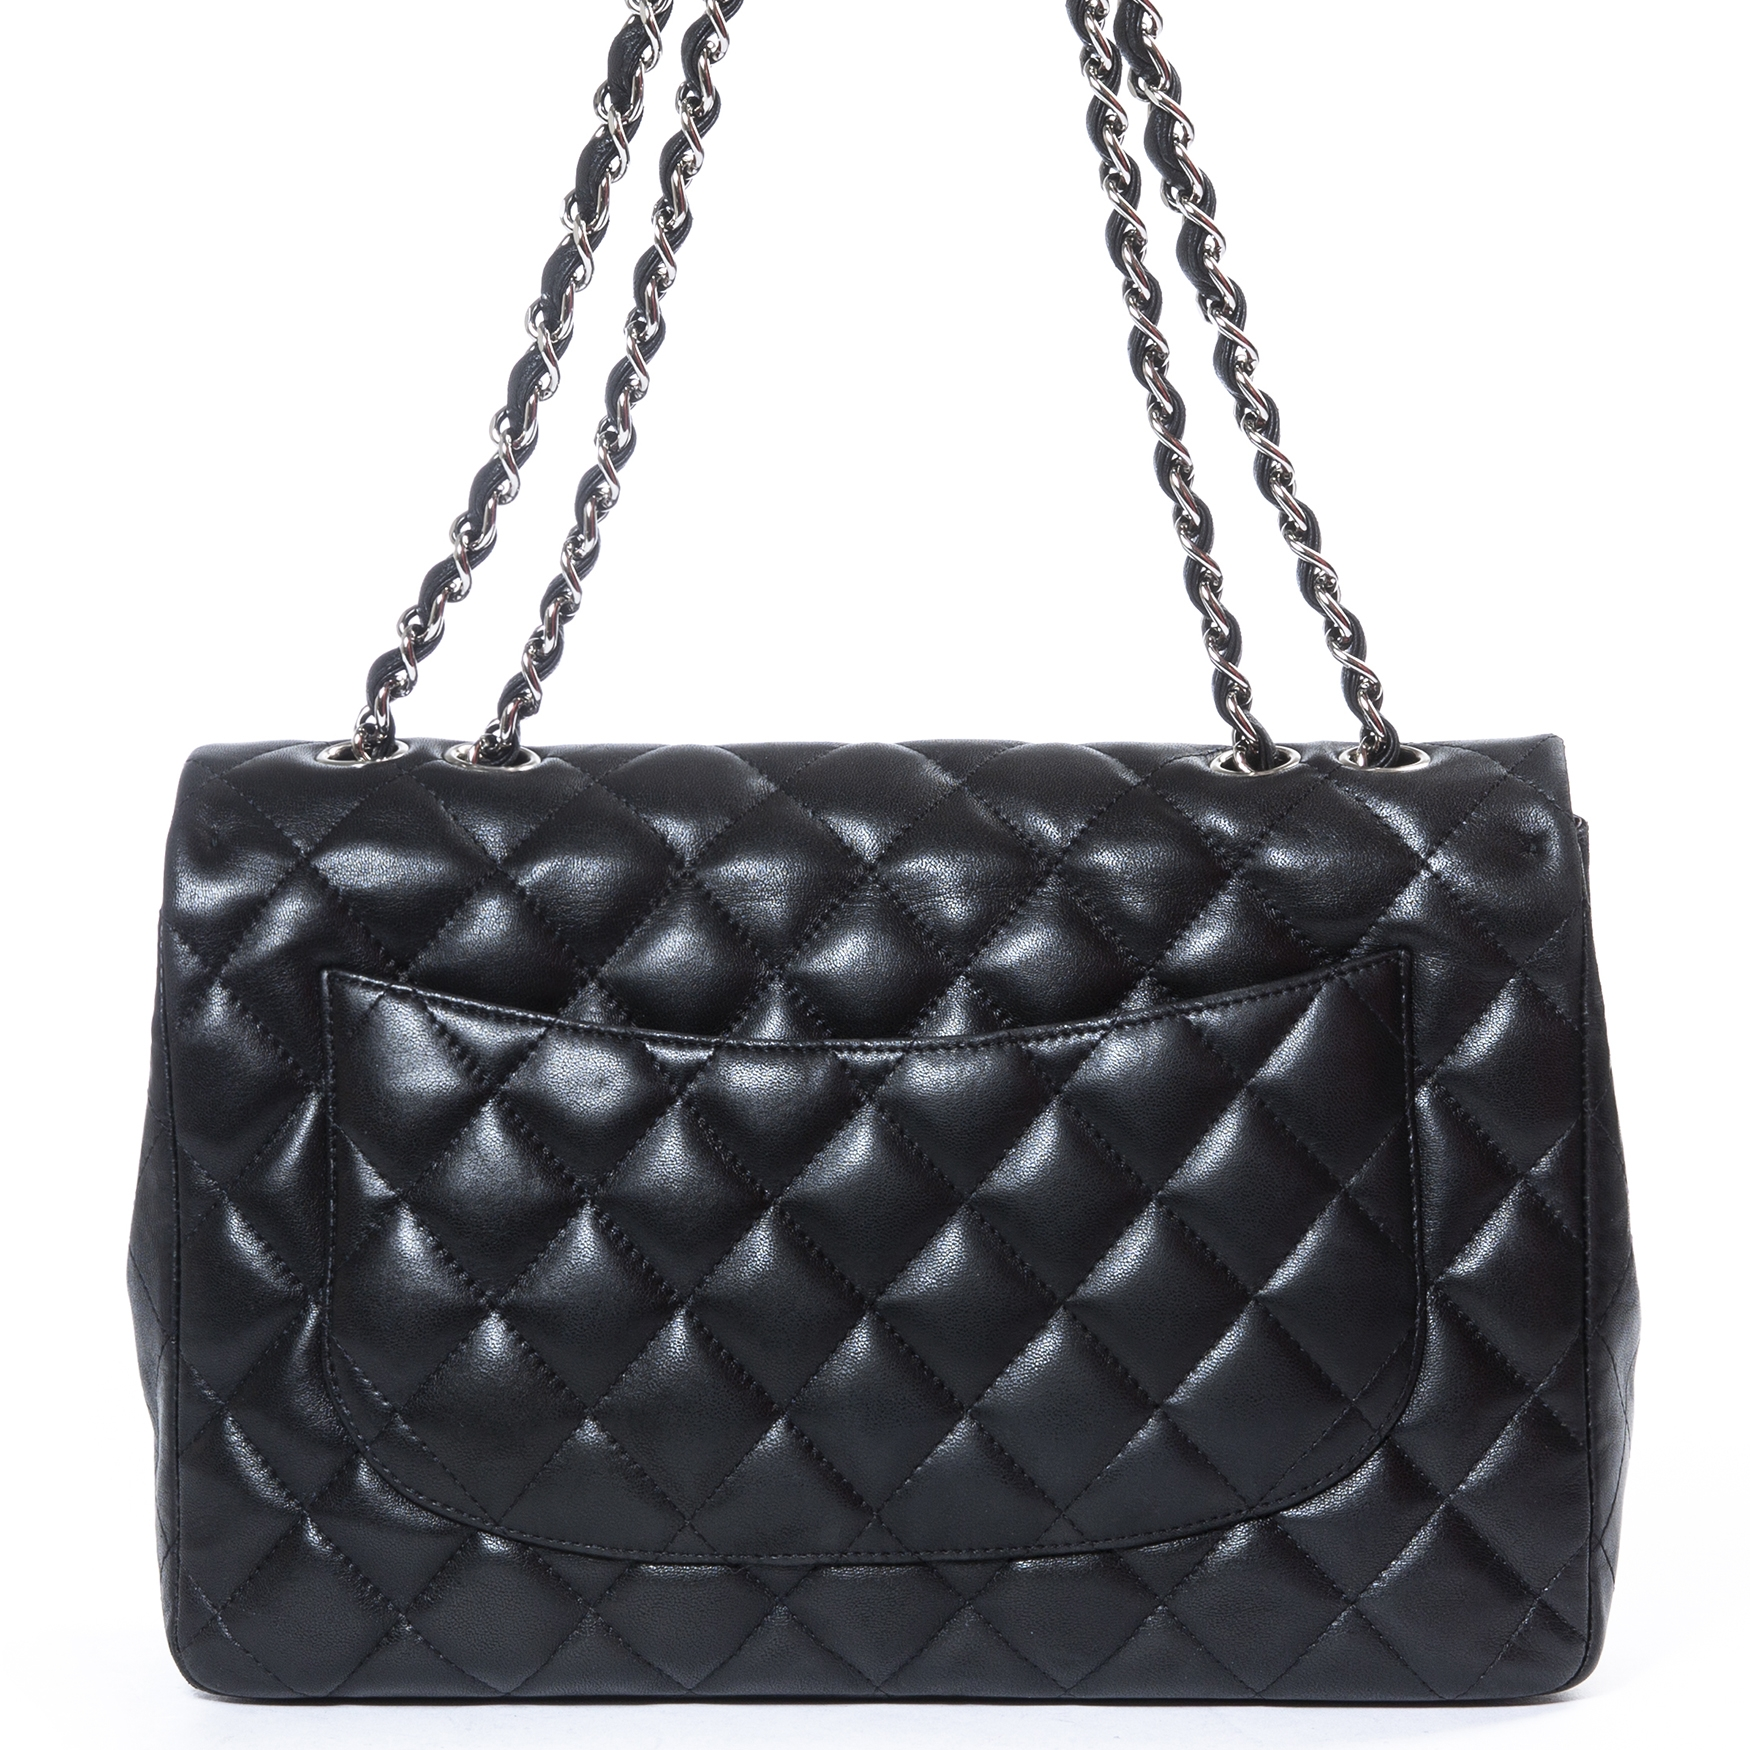 Buy and sell Chanel Black Caviar Leather Small Classic Flap Bag PHW